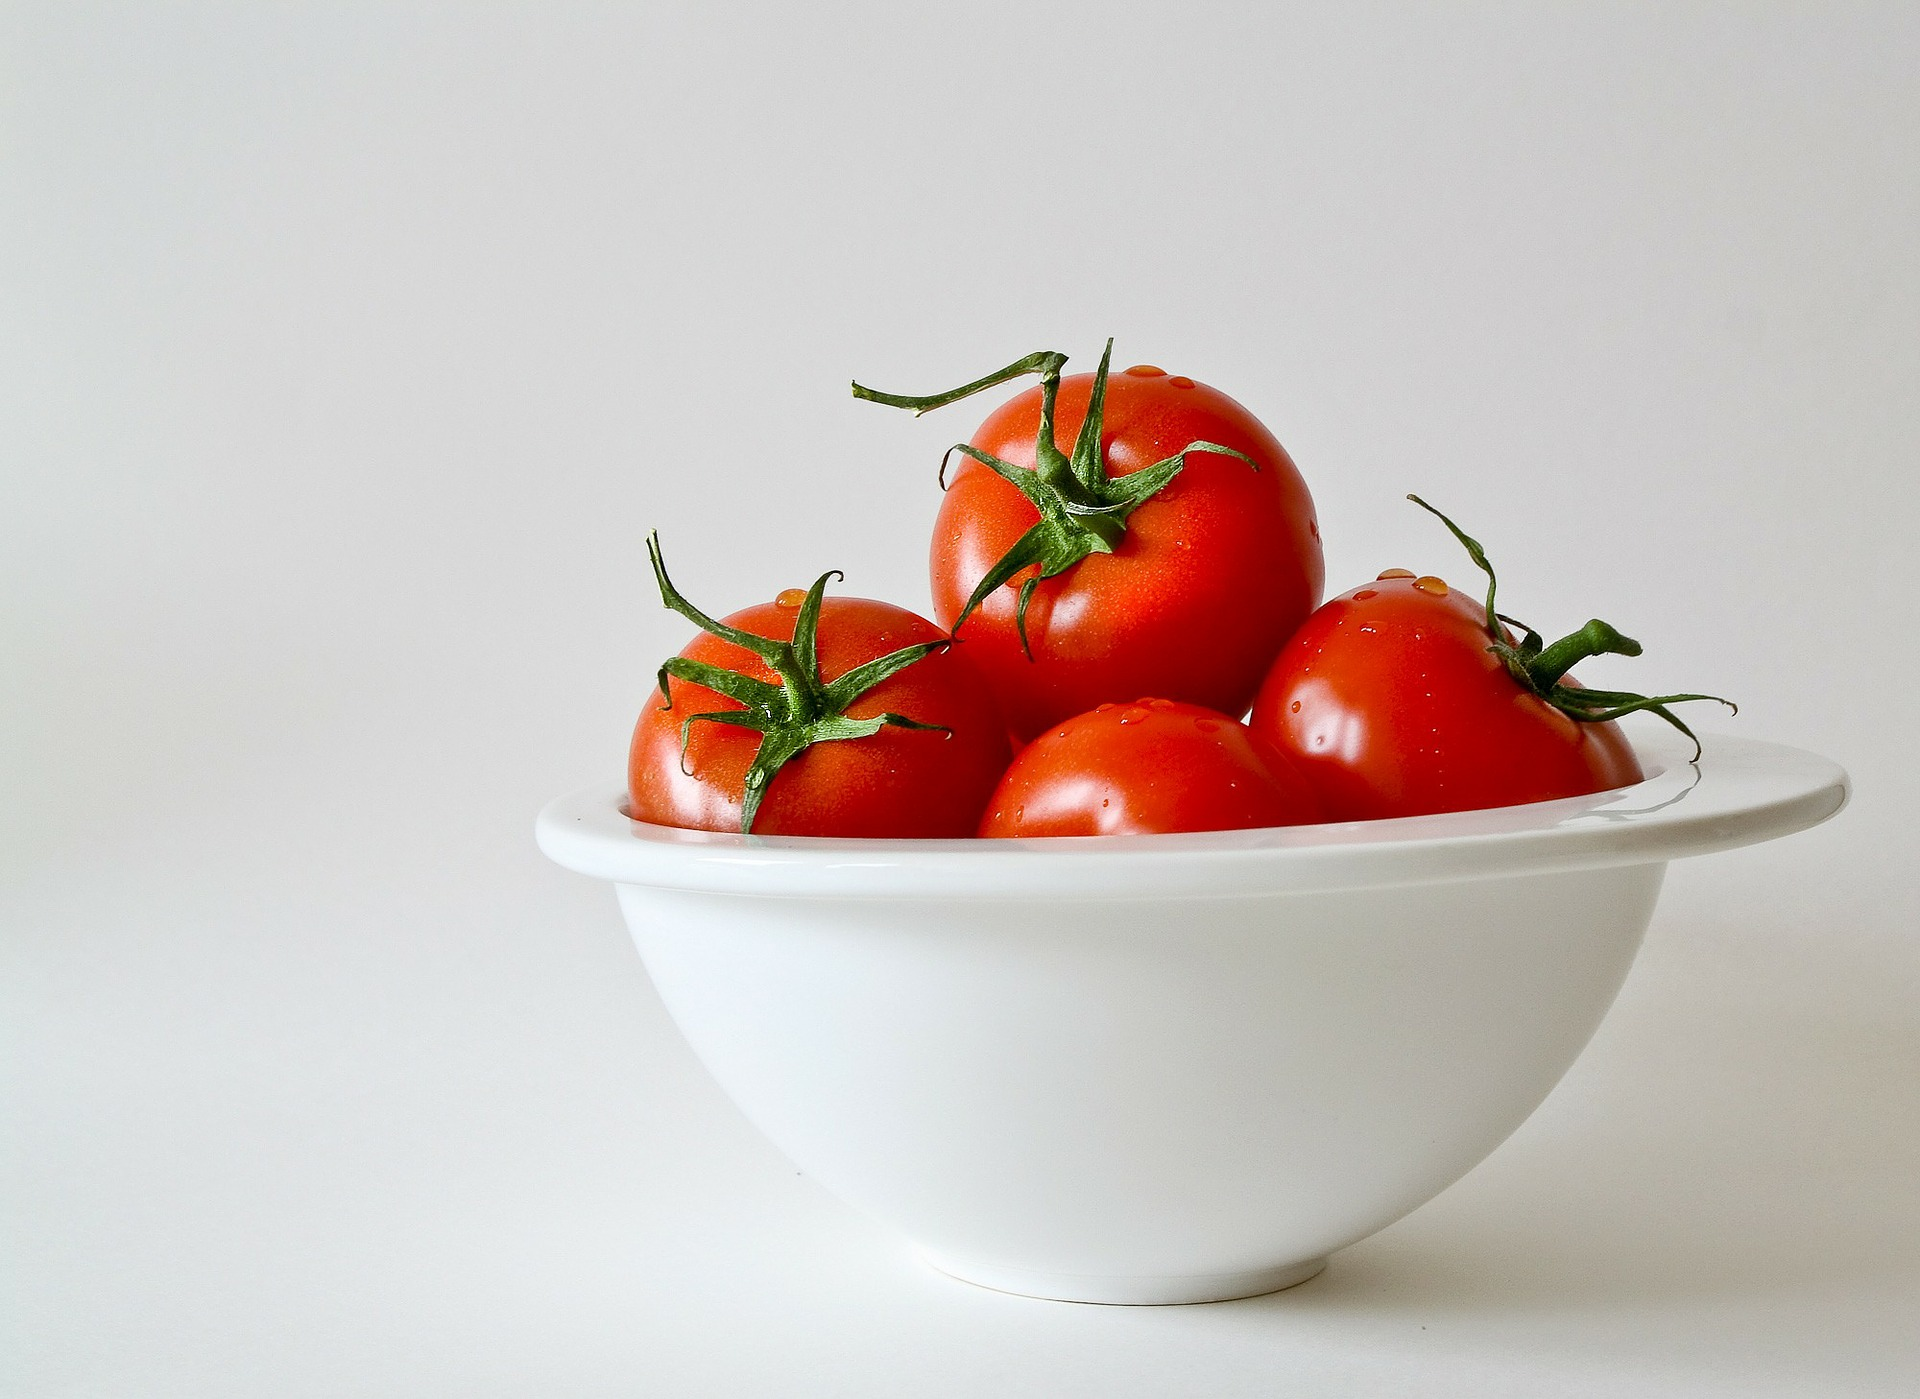 A Step-by-Step Guide on How to Grow Tomatoes From Seed